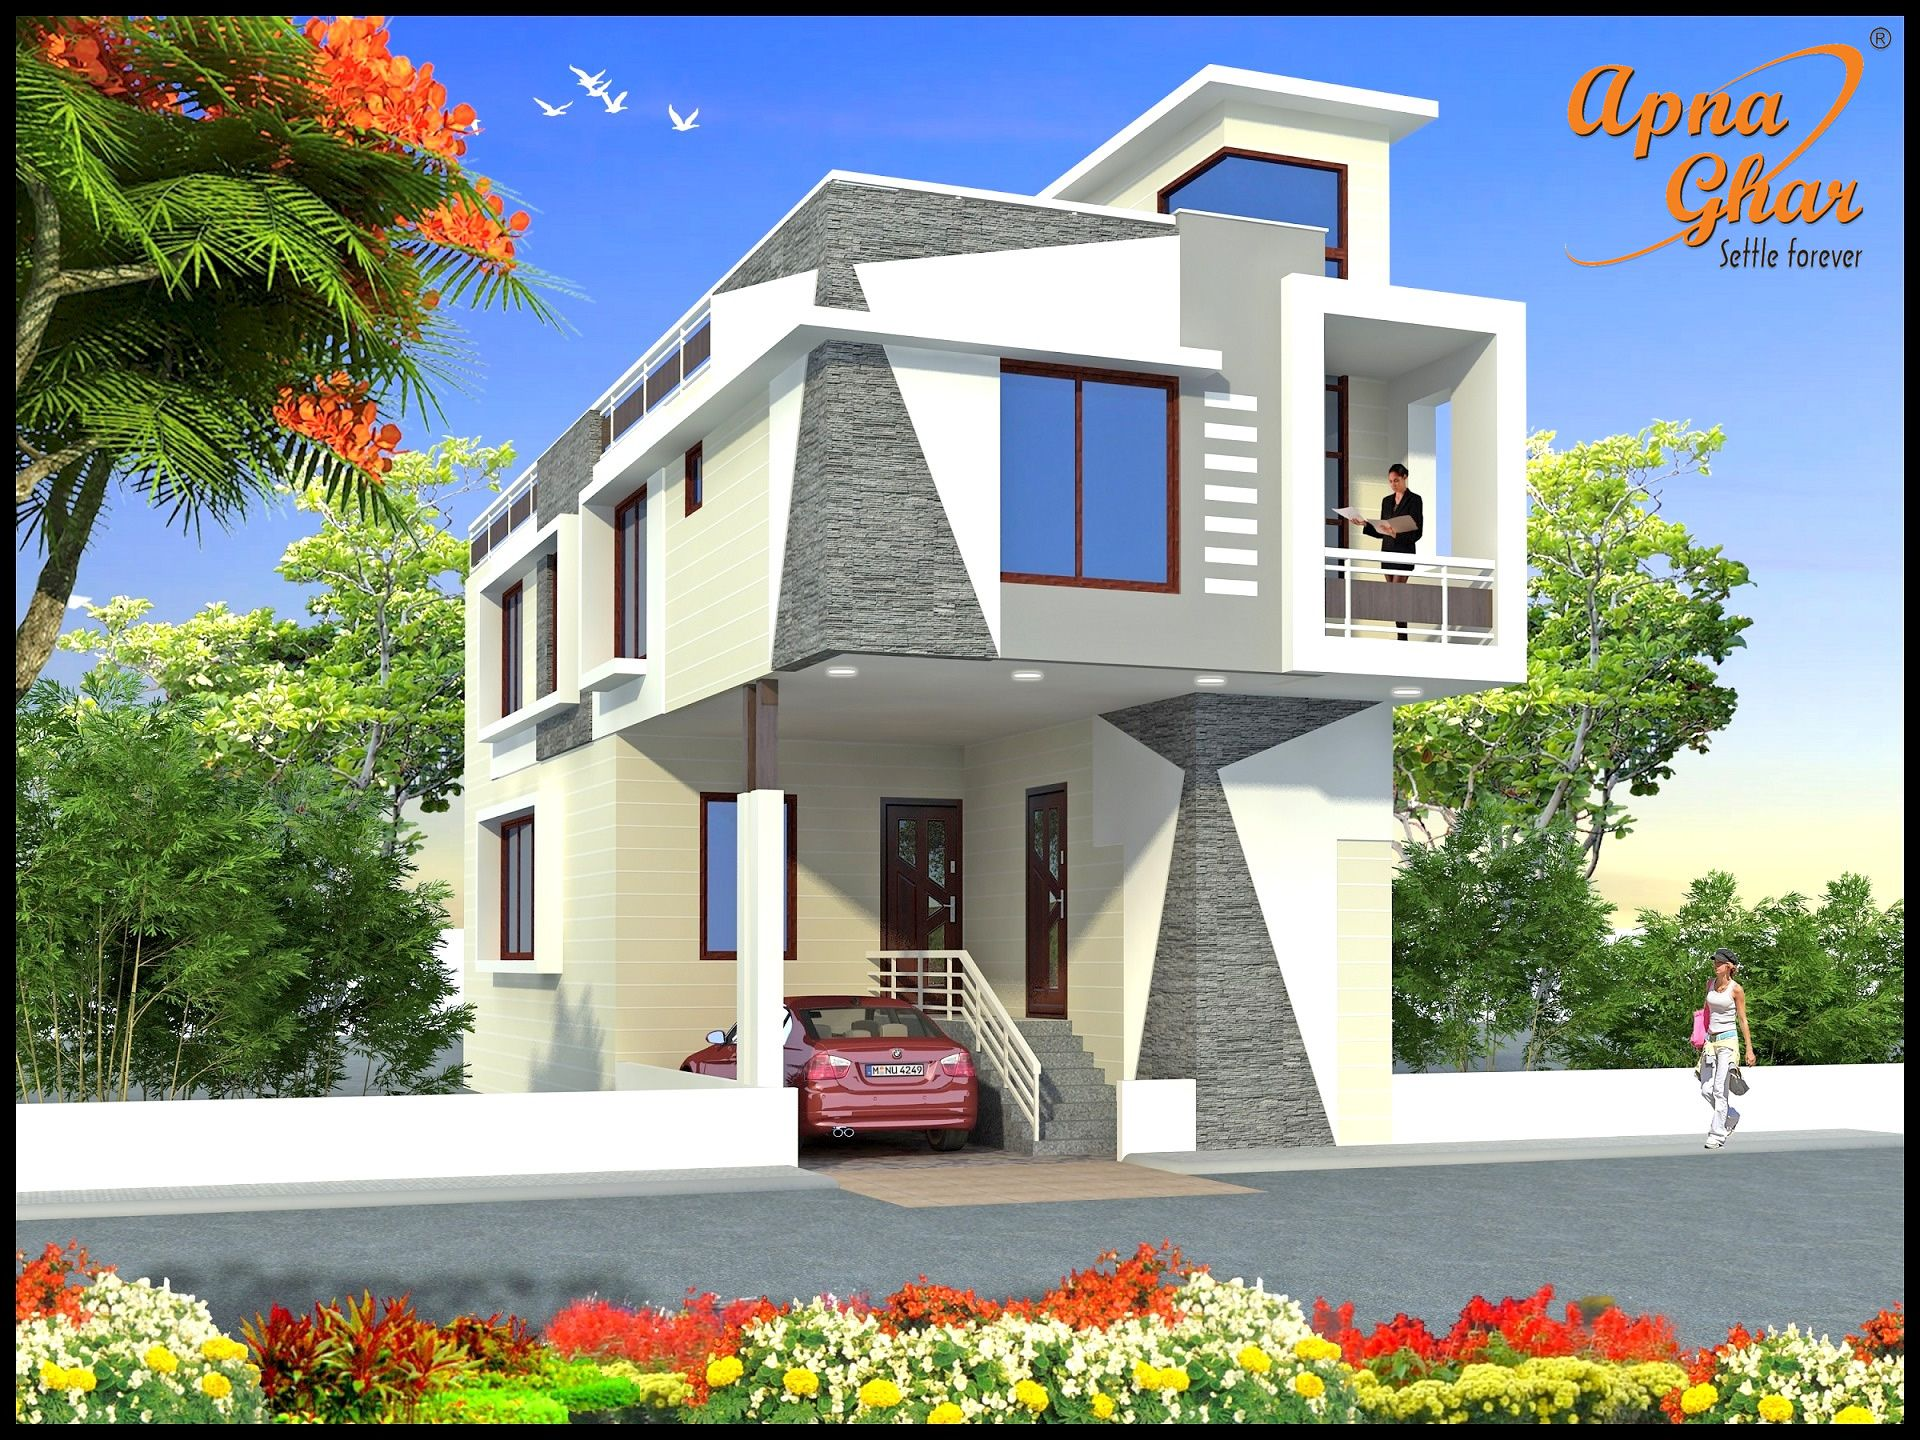 4 bedrooms duplex 2 floors home area 90m2 6m x 15m for 10m wide home designs